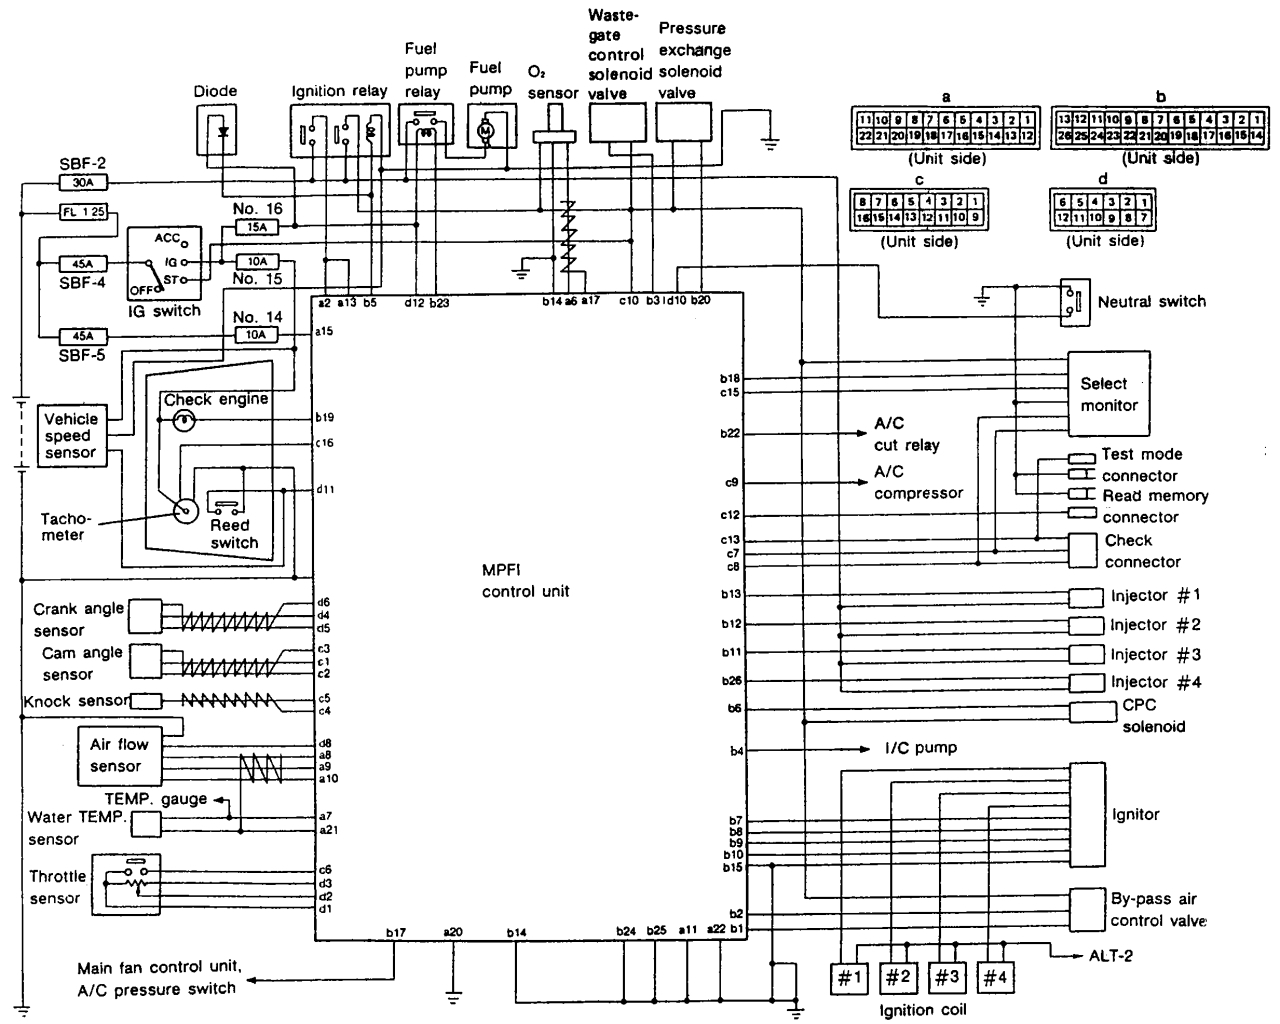 subaru legacy wiring diagram Download-Subaru Legacy Wiring Diagram Subaru Legacy Engine Diagram Beautiful Vehicle Subaru Impreza 1991 1996 Rusefi 16-j